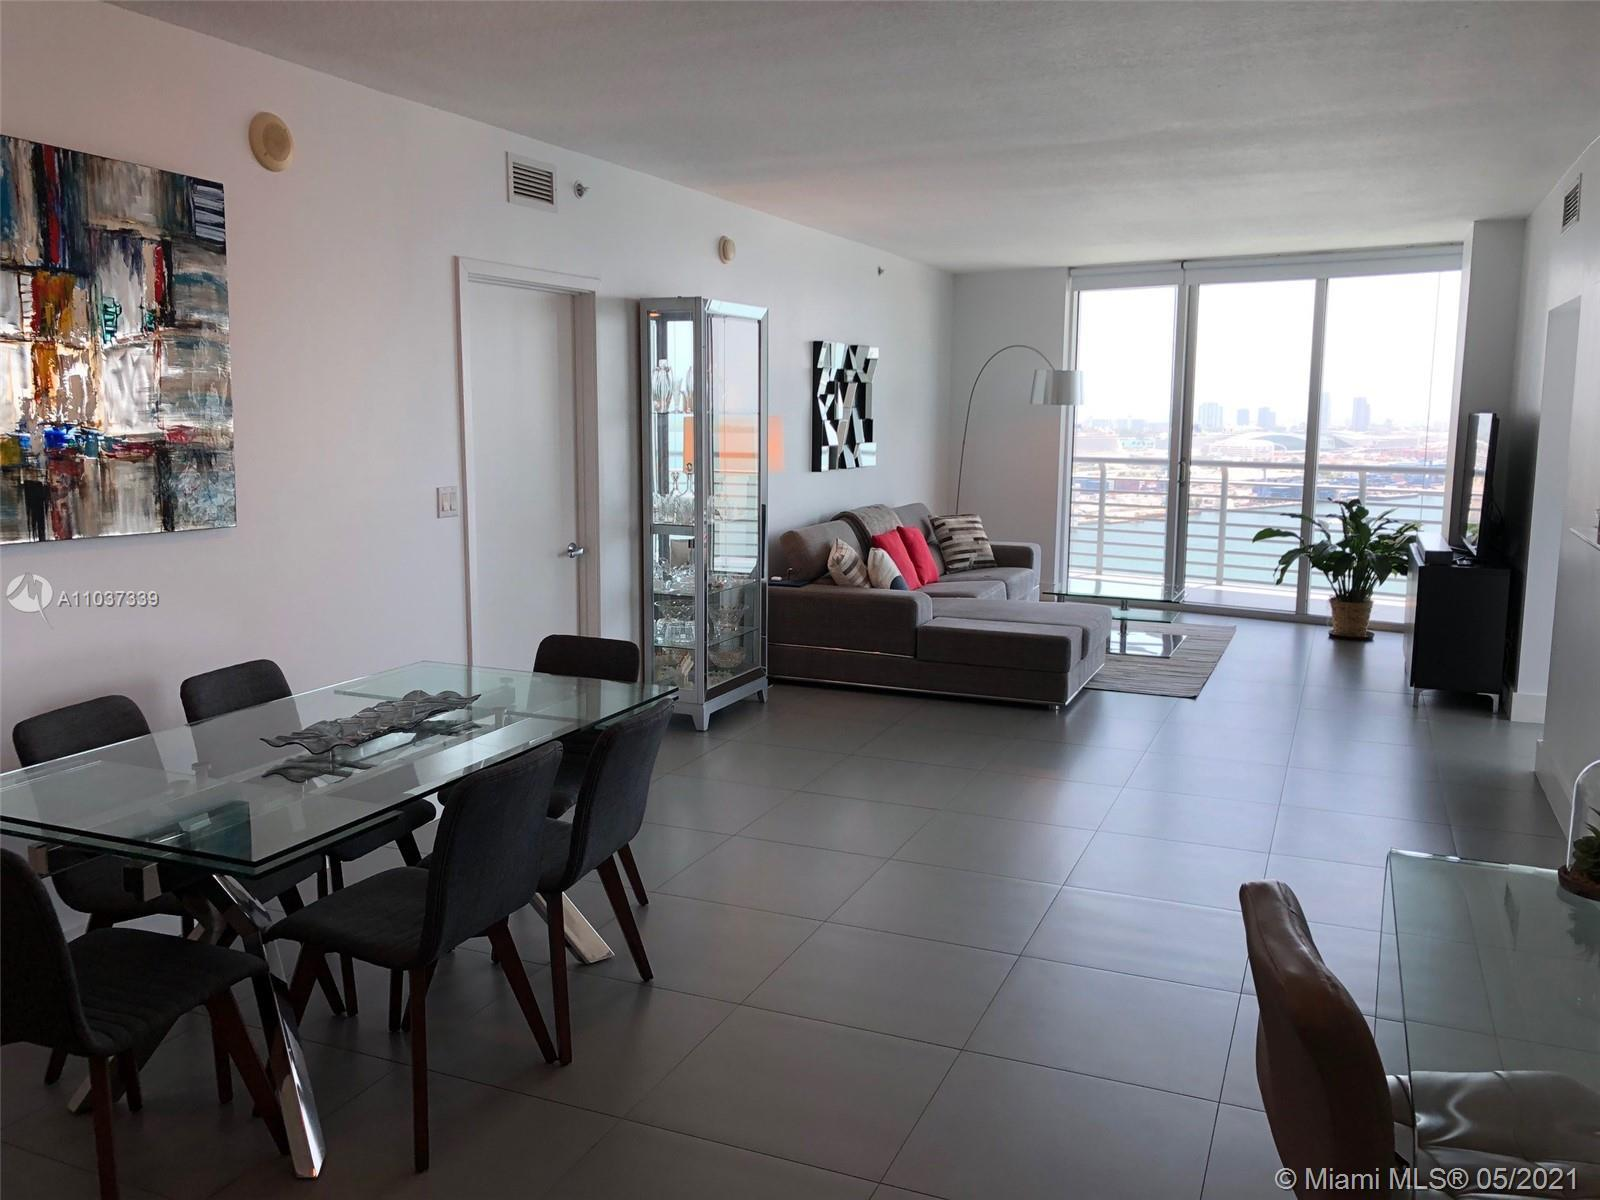 Spacious 3/2 amazing views & wrap around terrace. Center of everything. Just steps to Brickell, down